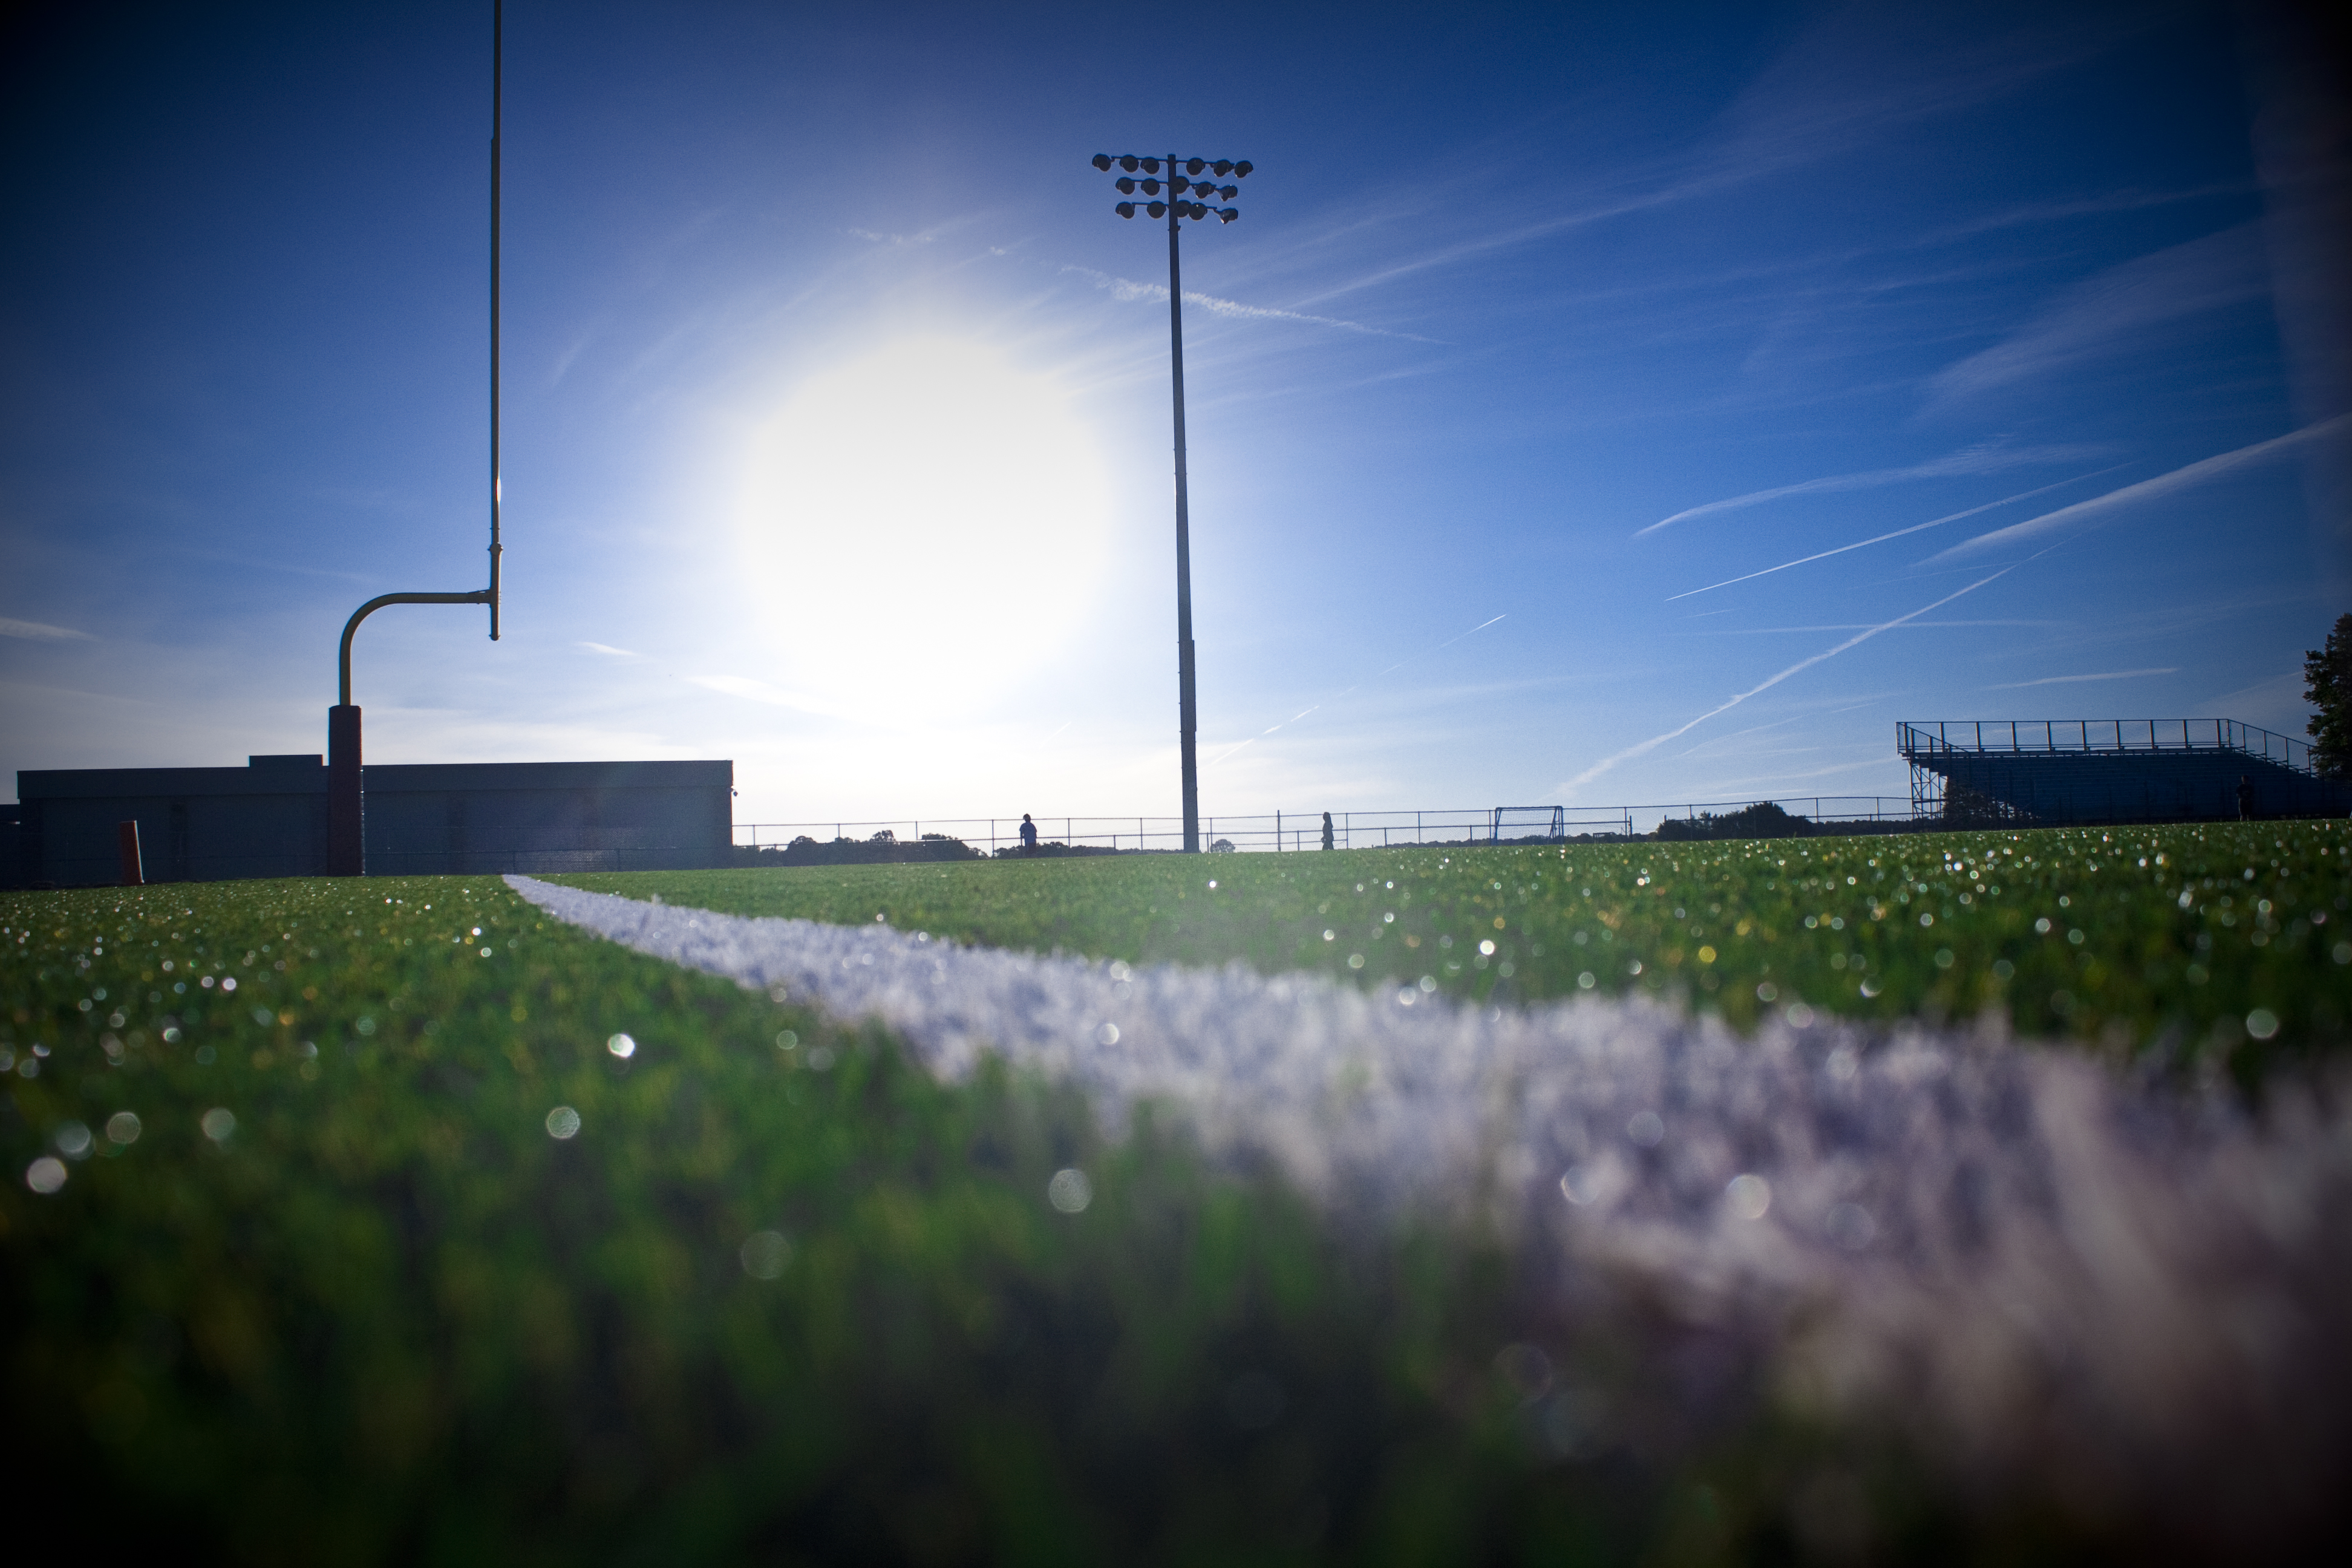 High School Football Field   wallpaper 3888x2592